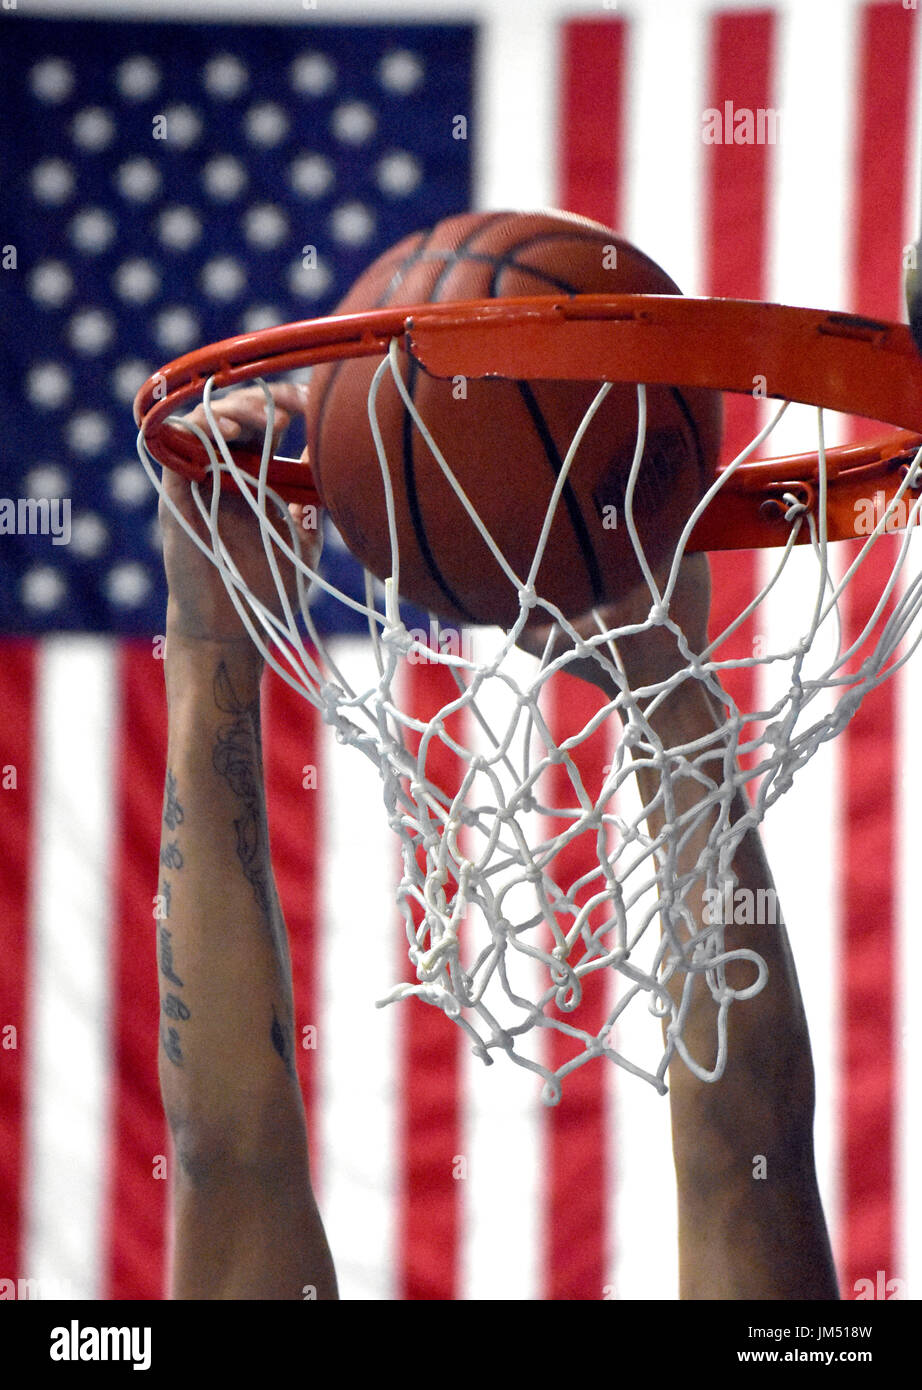 A close-up of a basketball being dunked in the basket with an American Flag in the background - Stock Image